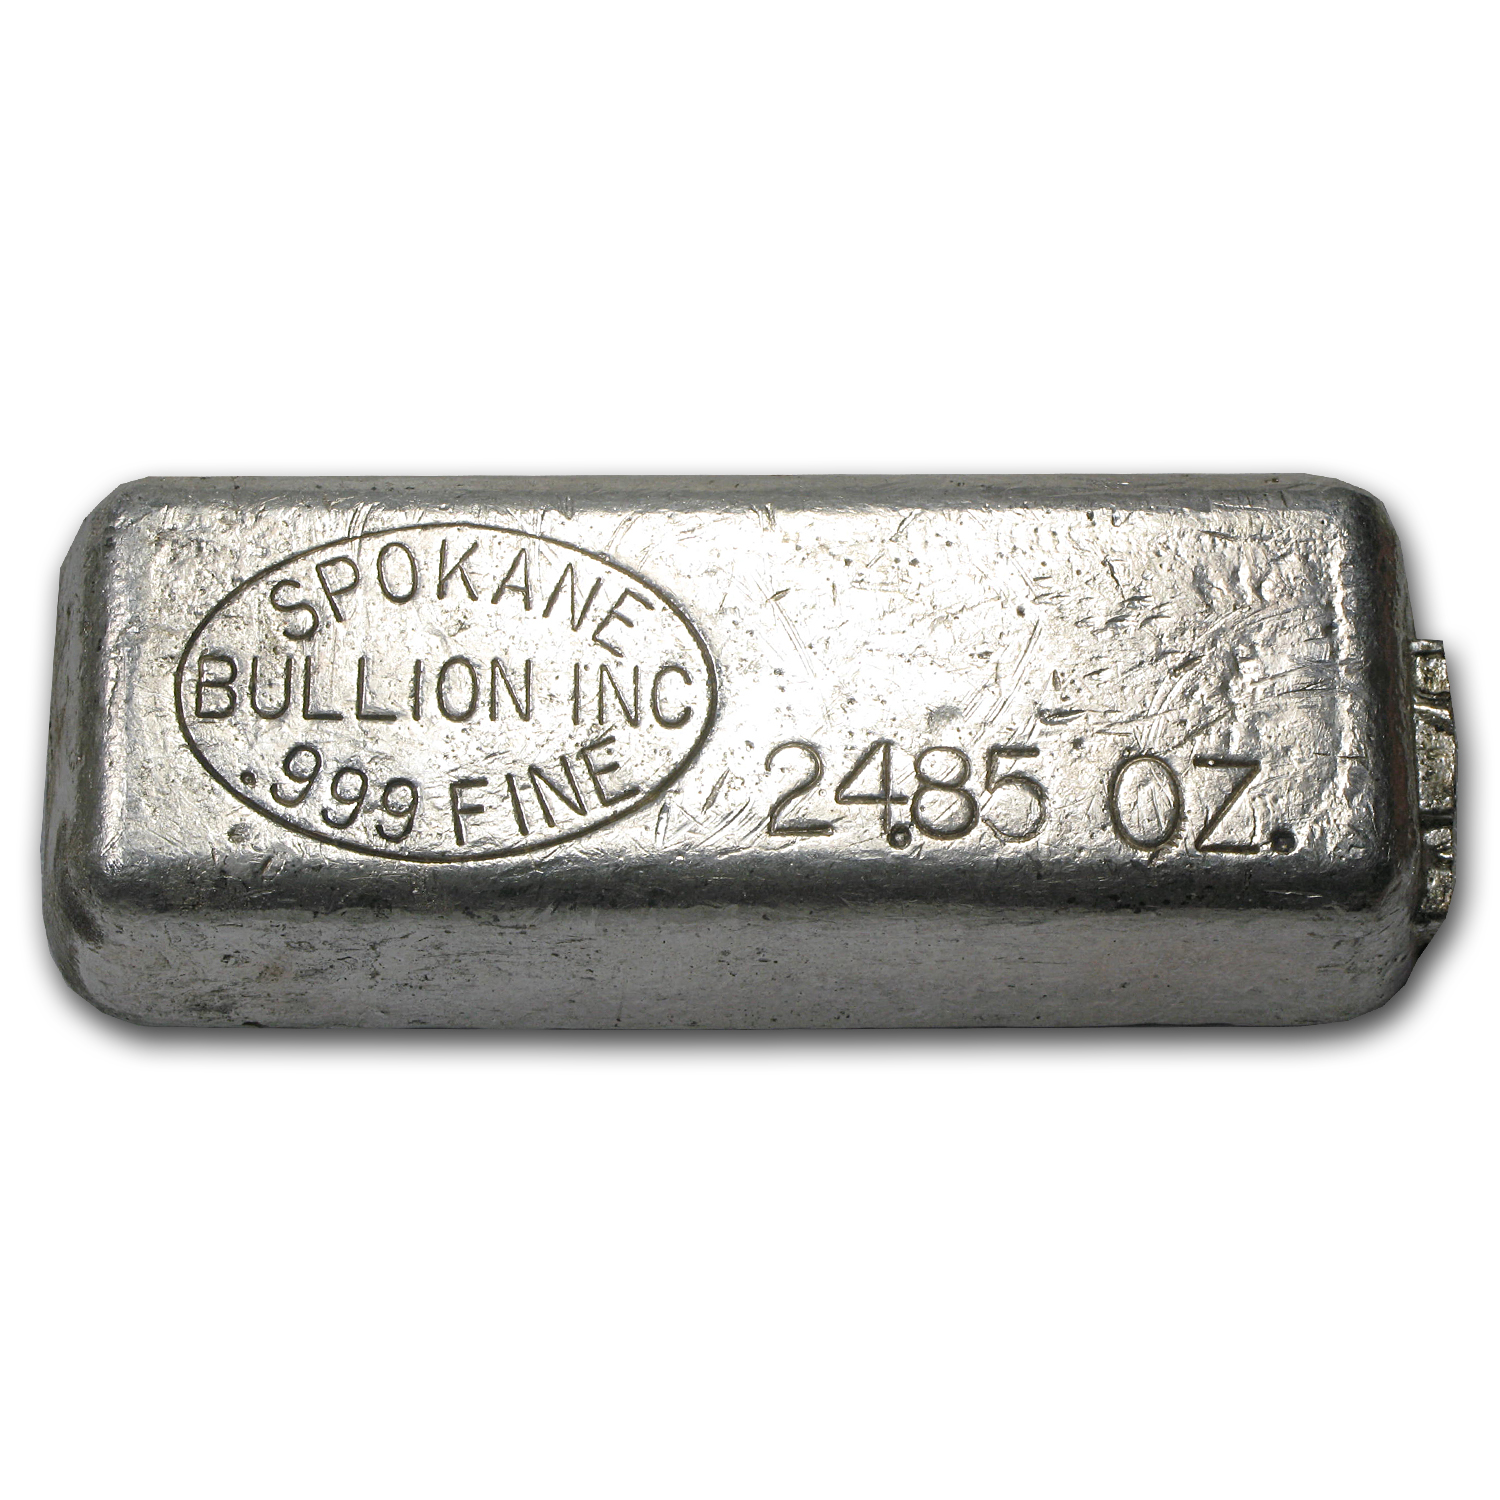 24.85 oz Silver Bar - Spokane Bullion Inc